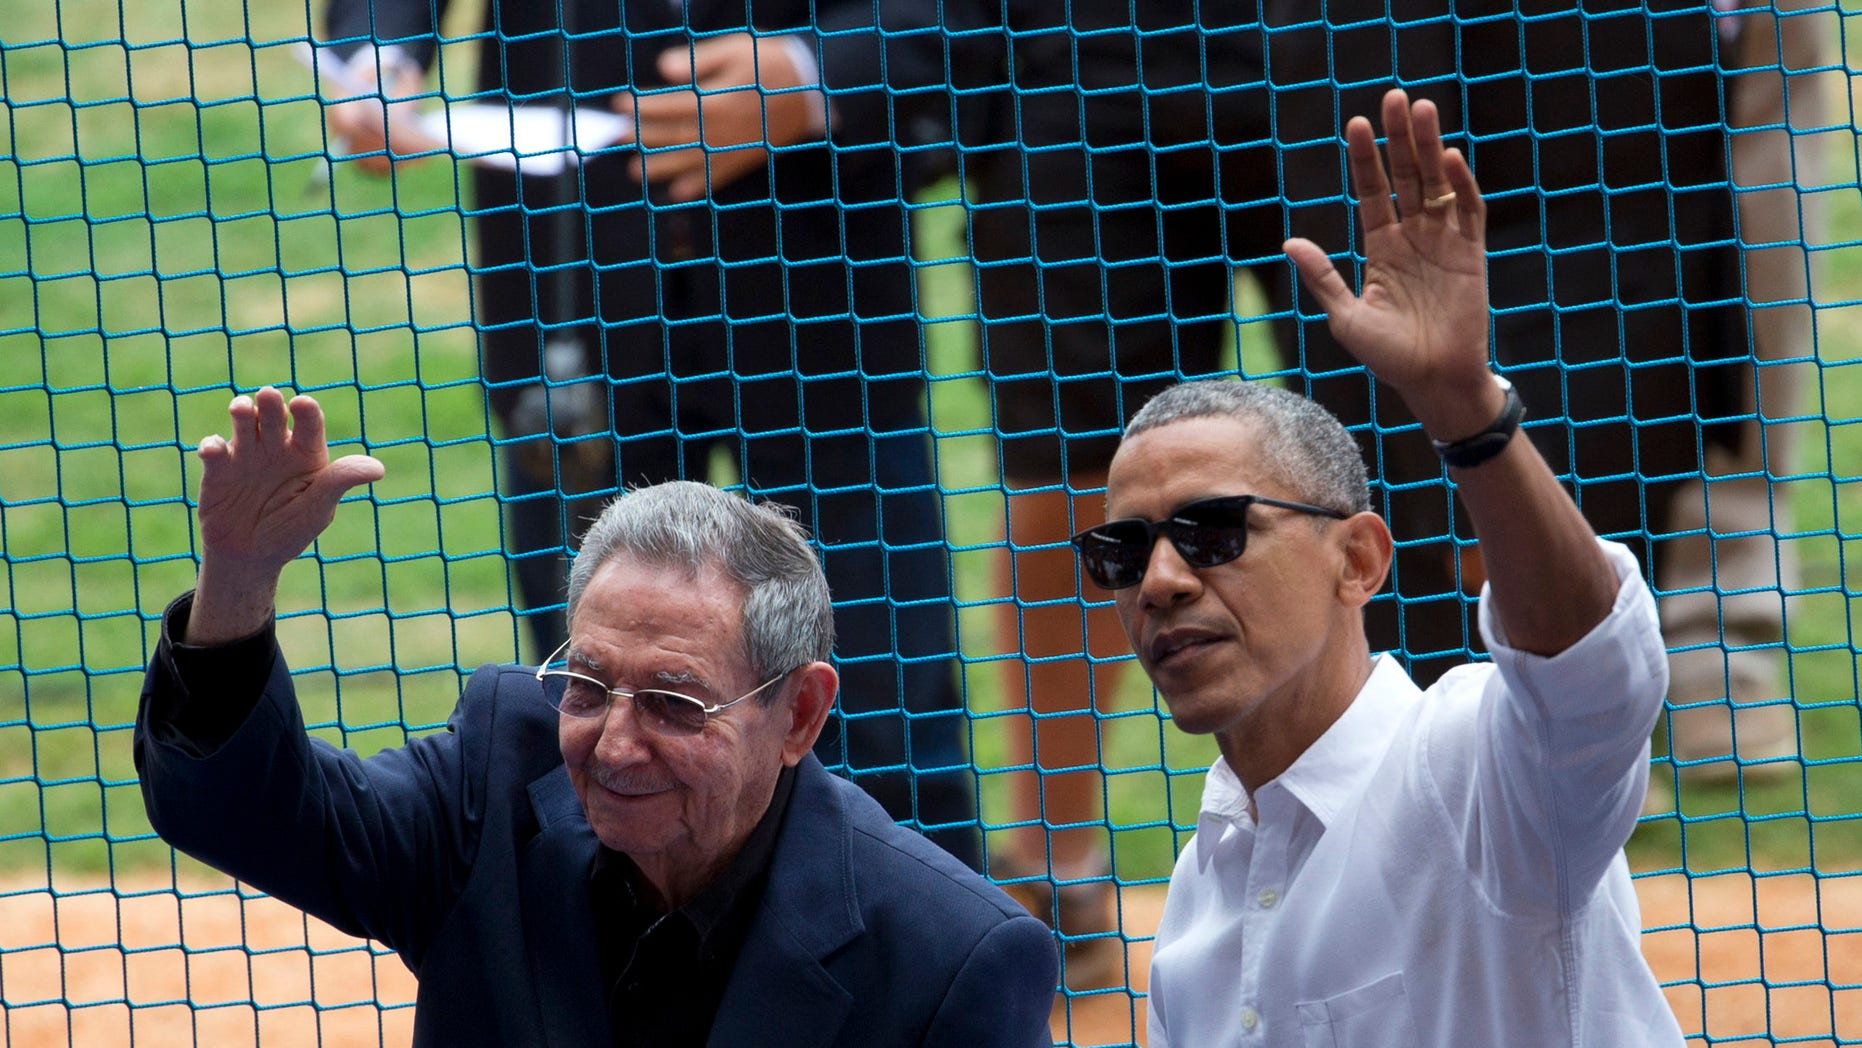 FILE - This March 22, 2016 file photo shows U.S. President Barack Obama, right, and his Cuban counterpart Raul Castro wave to cheering fans as they arrive for a baseball game between the Tampa Bay Rays and the Cuban national baseball team, in Havana, Cuba. Castroââ¬â¢s passing removes what was long the single greatest psychological barrier to a warmer U.S.-Cuban relationship. But it also adds to the uncertainty ahead with the transition from an Obama to Trump administration. (AP Photo/Rebecca Blackwell, File)